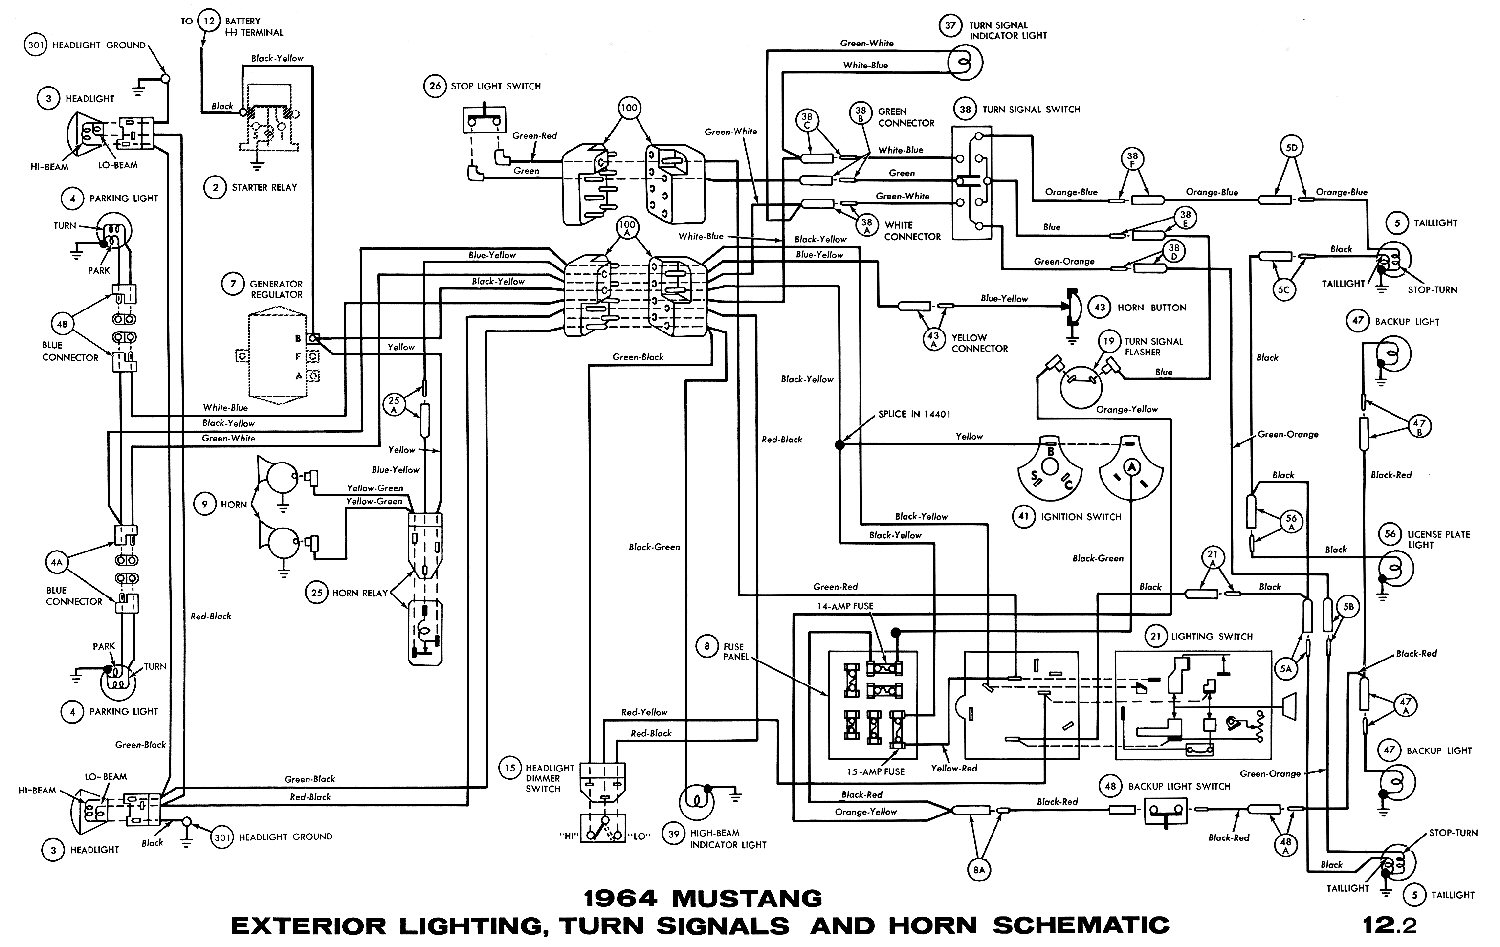 1964i 1964 mustang wiring diagrams average joe restoration 93 mustang turn signal wiring diagram at couponss.co